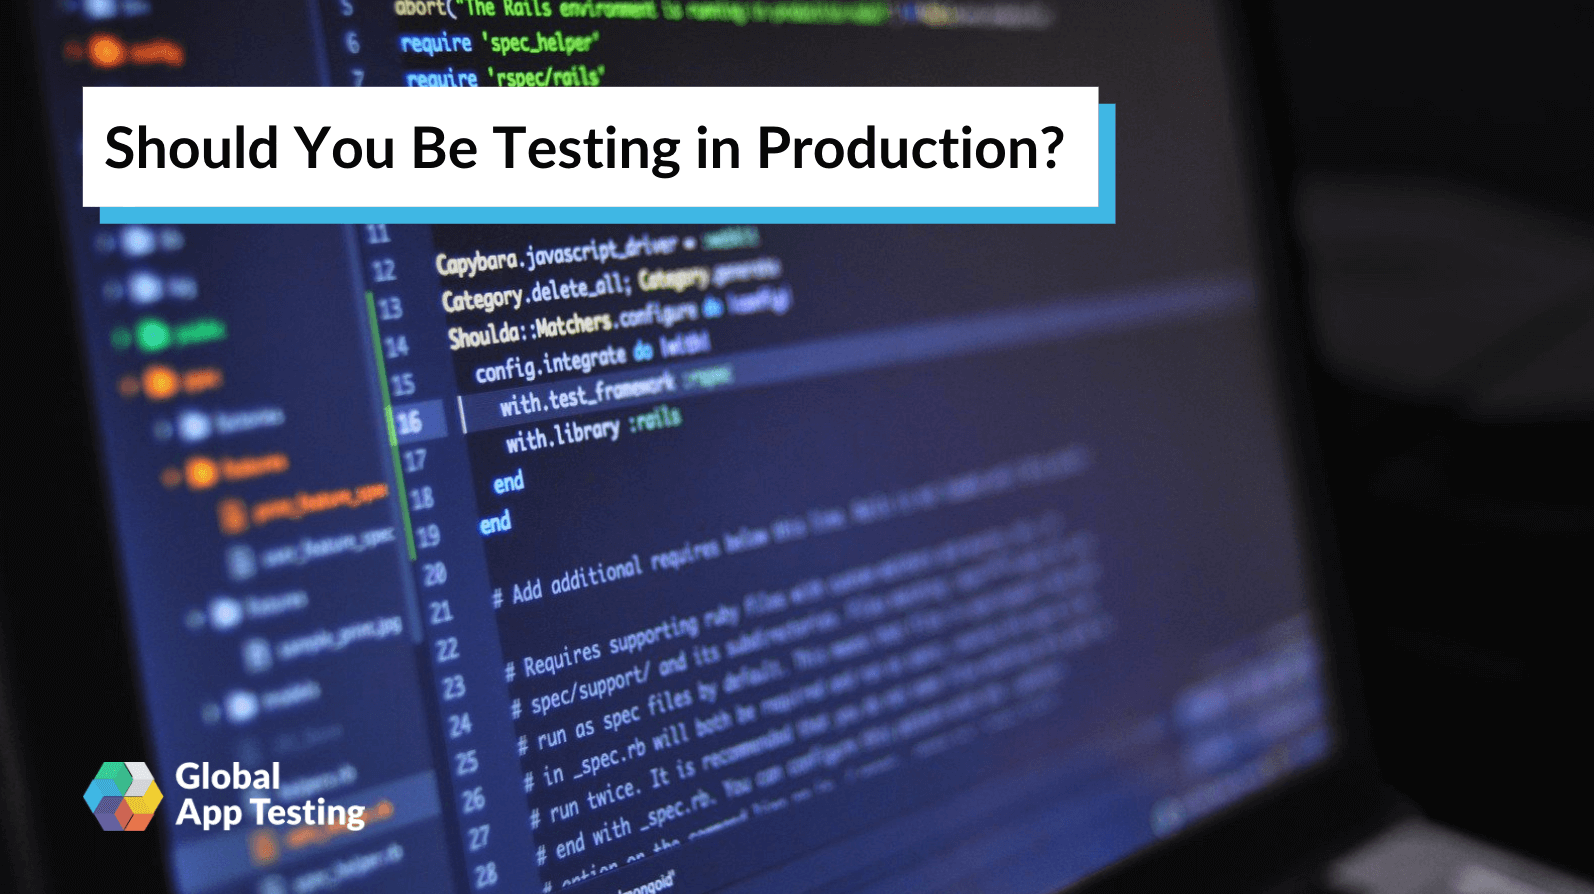 Should You Be Testing In Production?